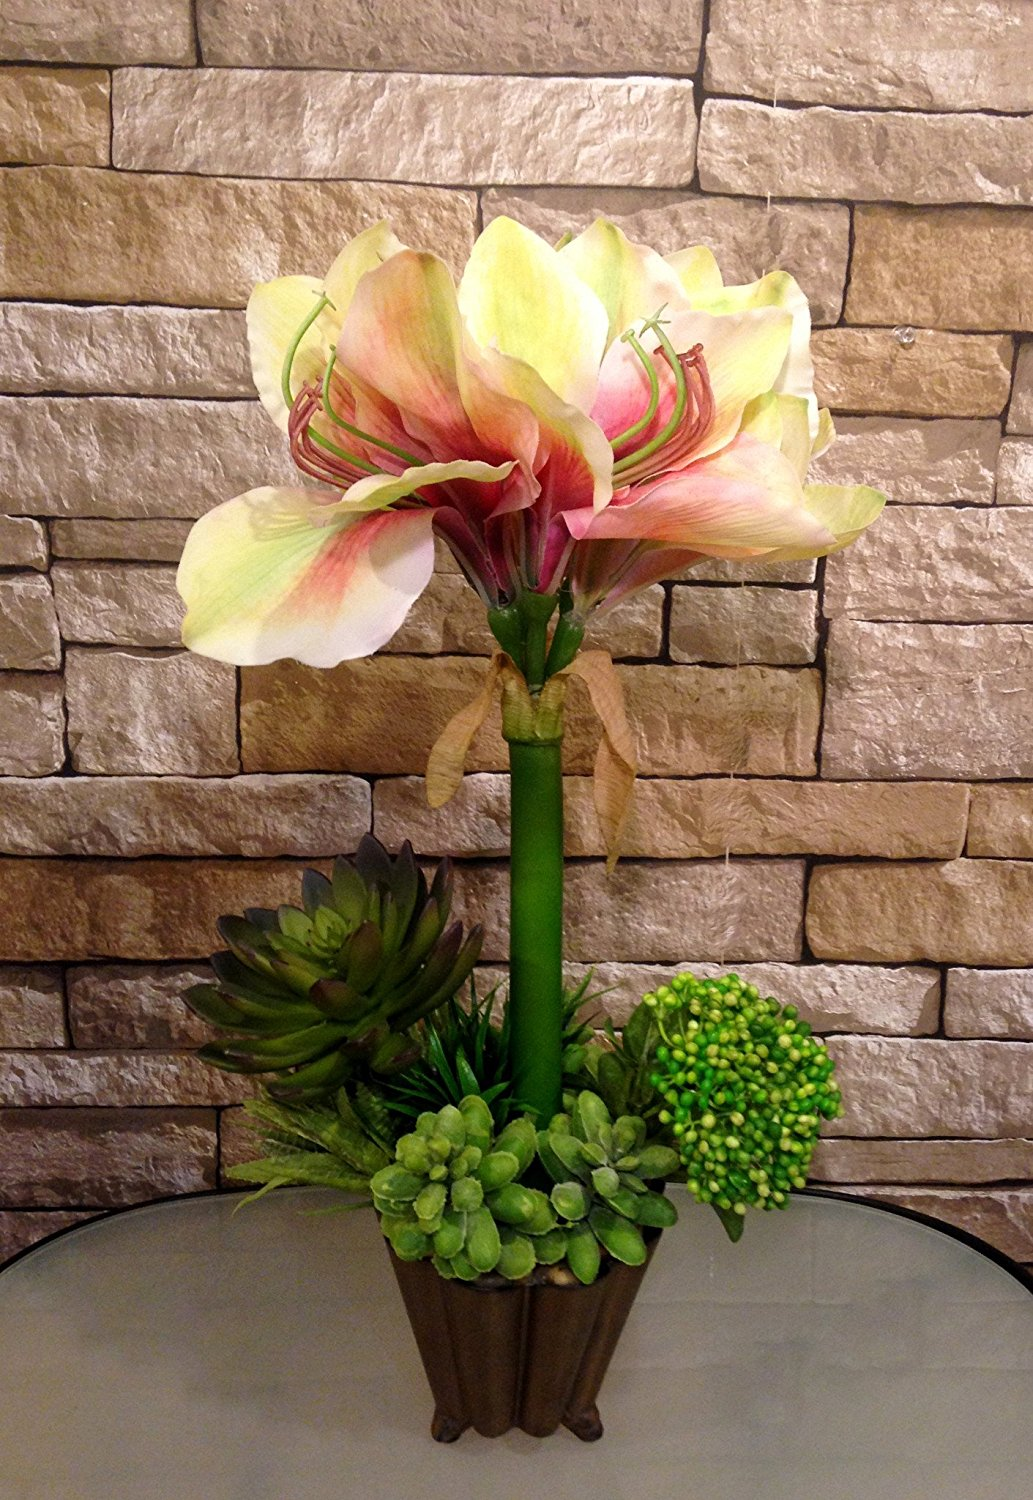 Cheap Office Silk Plants Find Office Silk Plants Deals On Line At